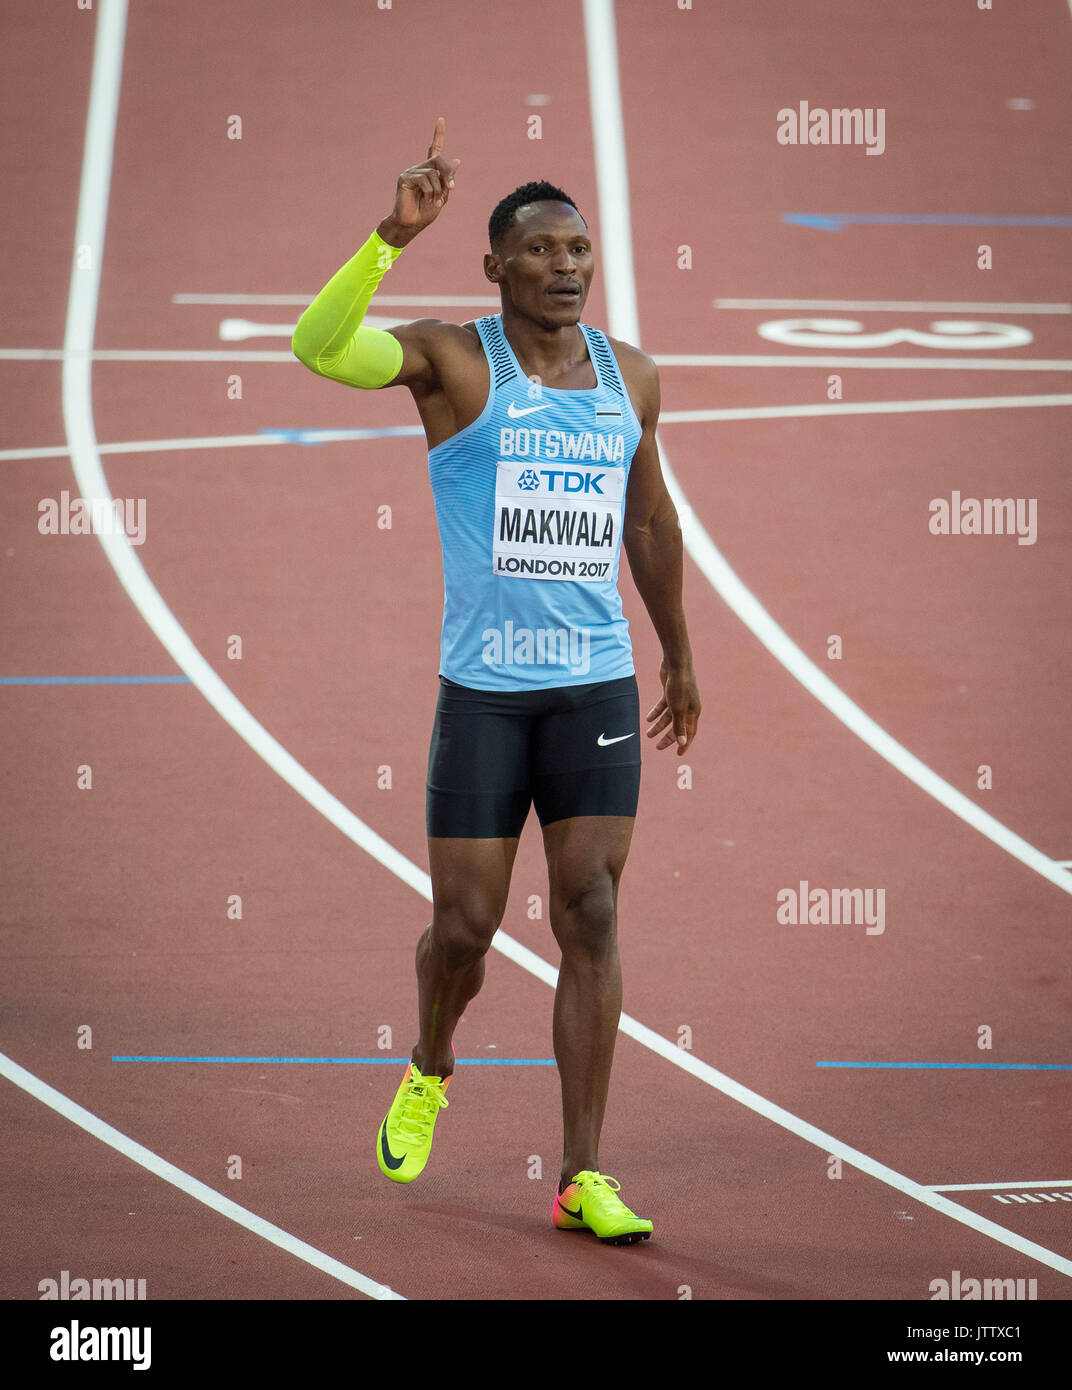 Isaac MAKWALA of Botswana celebrates his 400m heat win (44.30) during the IAAF World Championships Athletics 2017 Day Three at the Olympic Park, London, England on 6 August 2017. Photo by Andy Rowland. - Stock Image